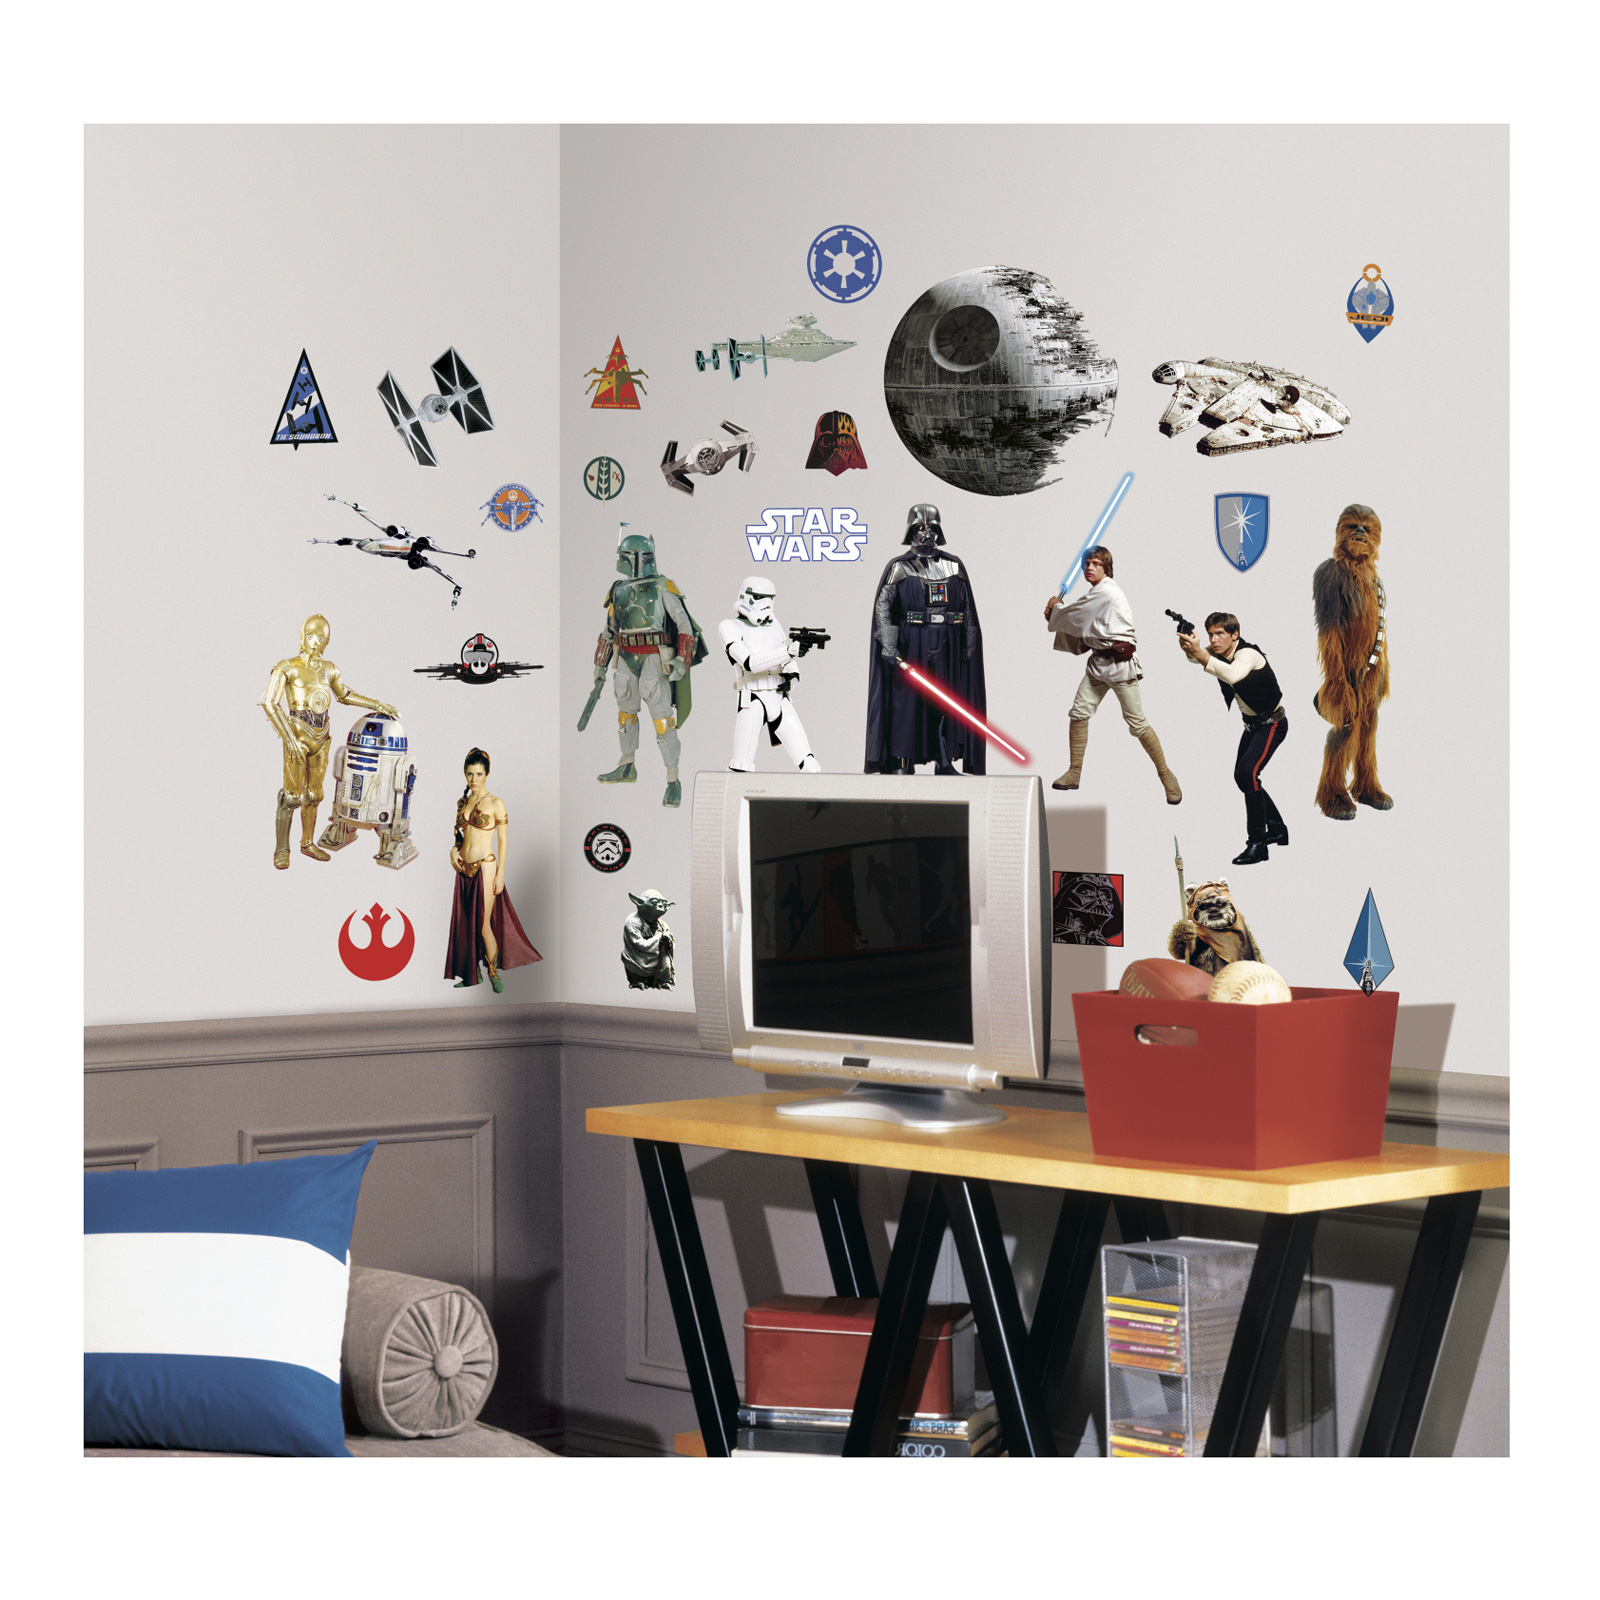 Star Wars Classic Wall Decals 0400786